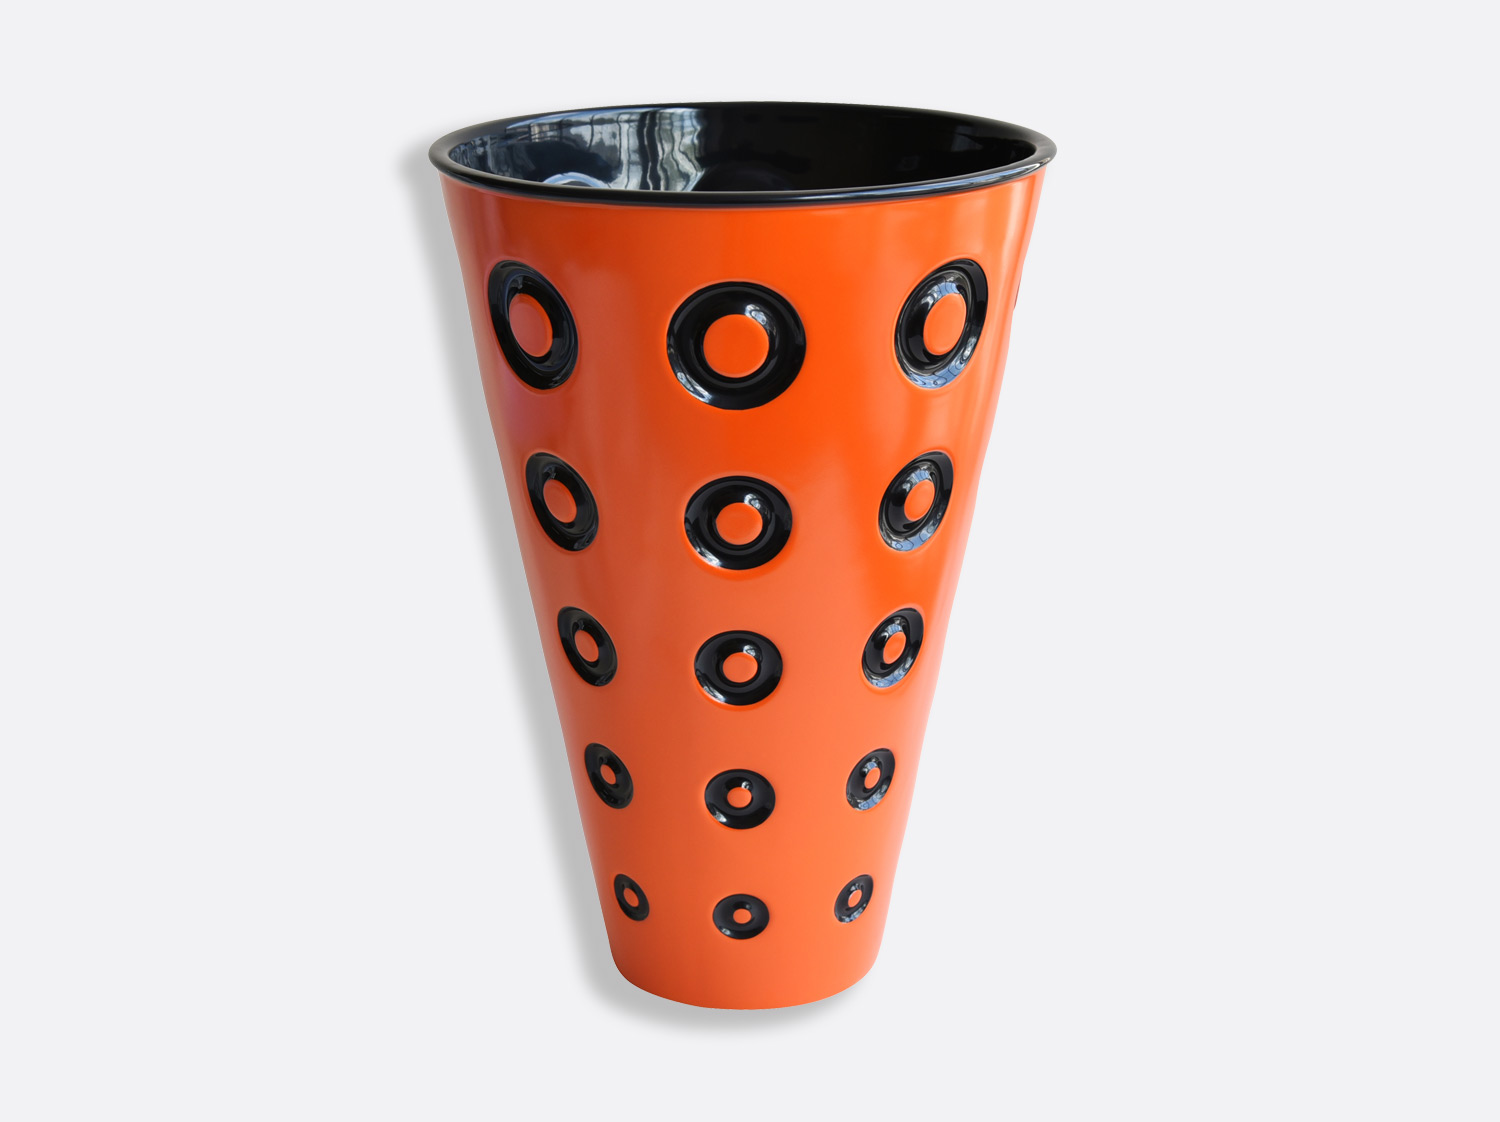 China Vase H. 37,5 cm of the collection Panarea Orange | Bernardaud